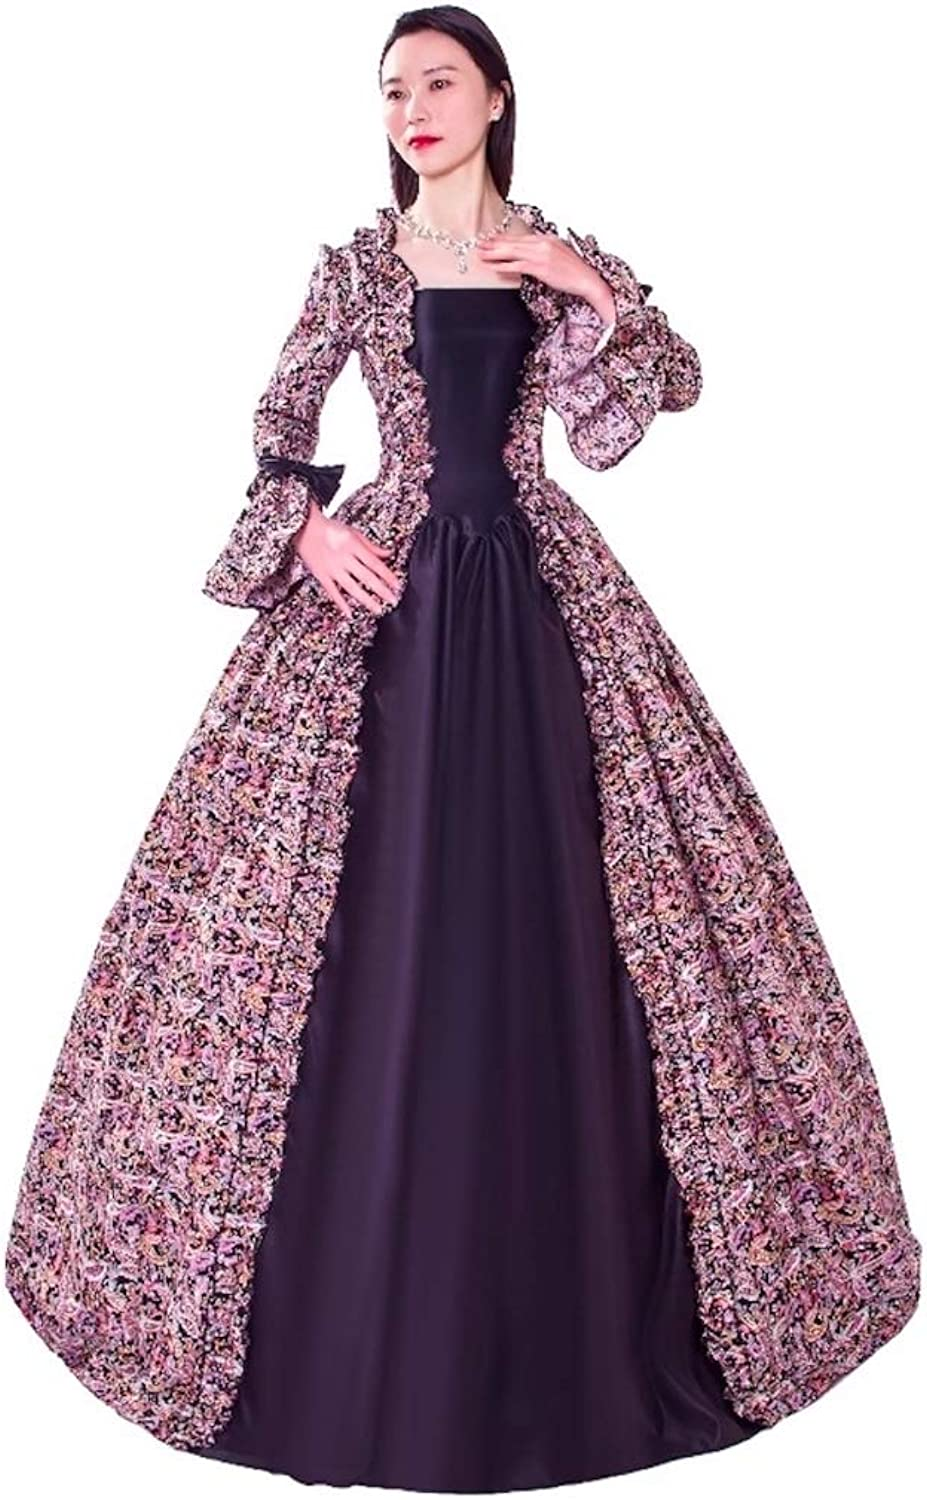 KEMAO Gothic Lolita Classic Traditional Lolita Vintage Inspired Victorian Rococo Medieval Cosplay Lolita Dress Red